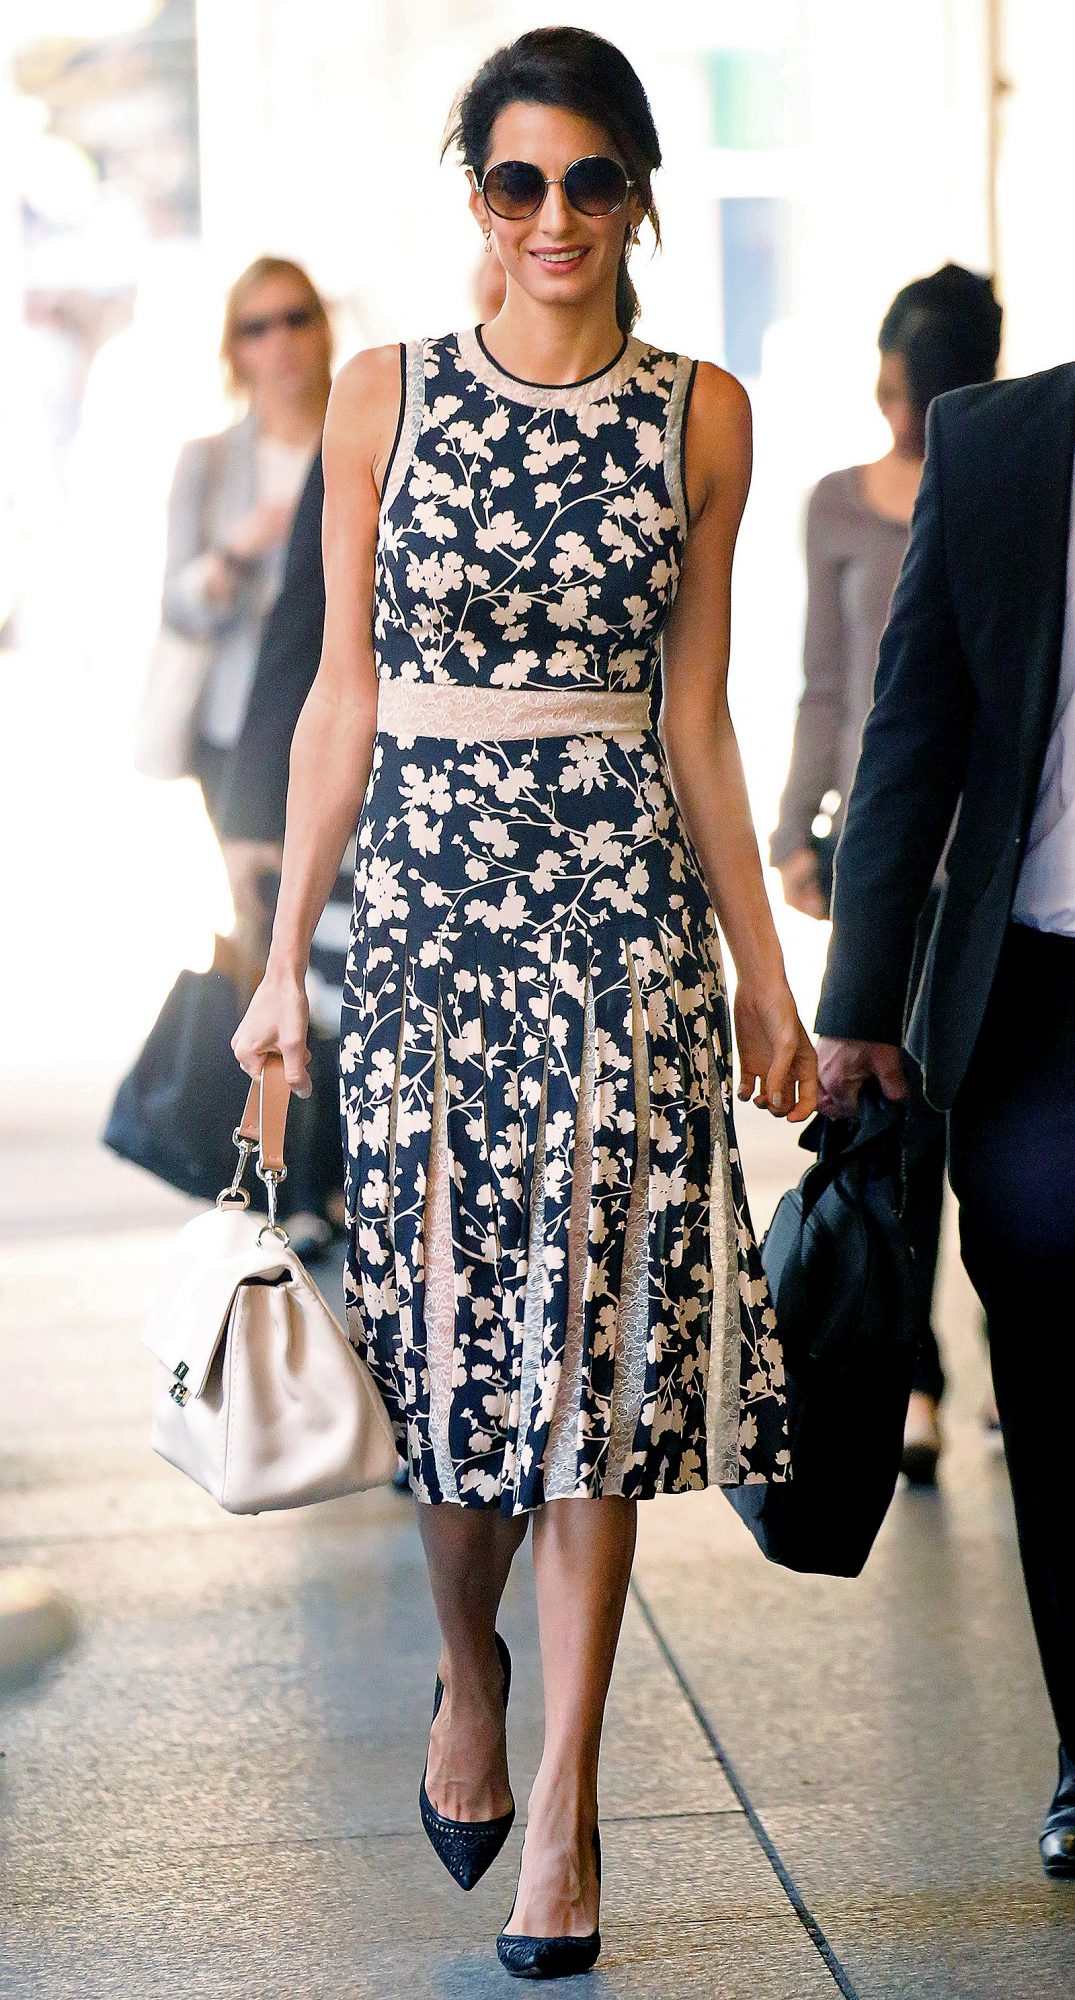 EXCLUSIVE: Amal Clooney spotted wearing a Black & Beige Floral Print Dress while out and about in New York City